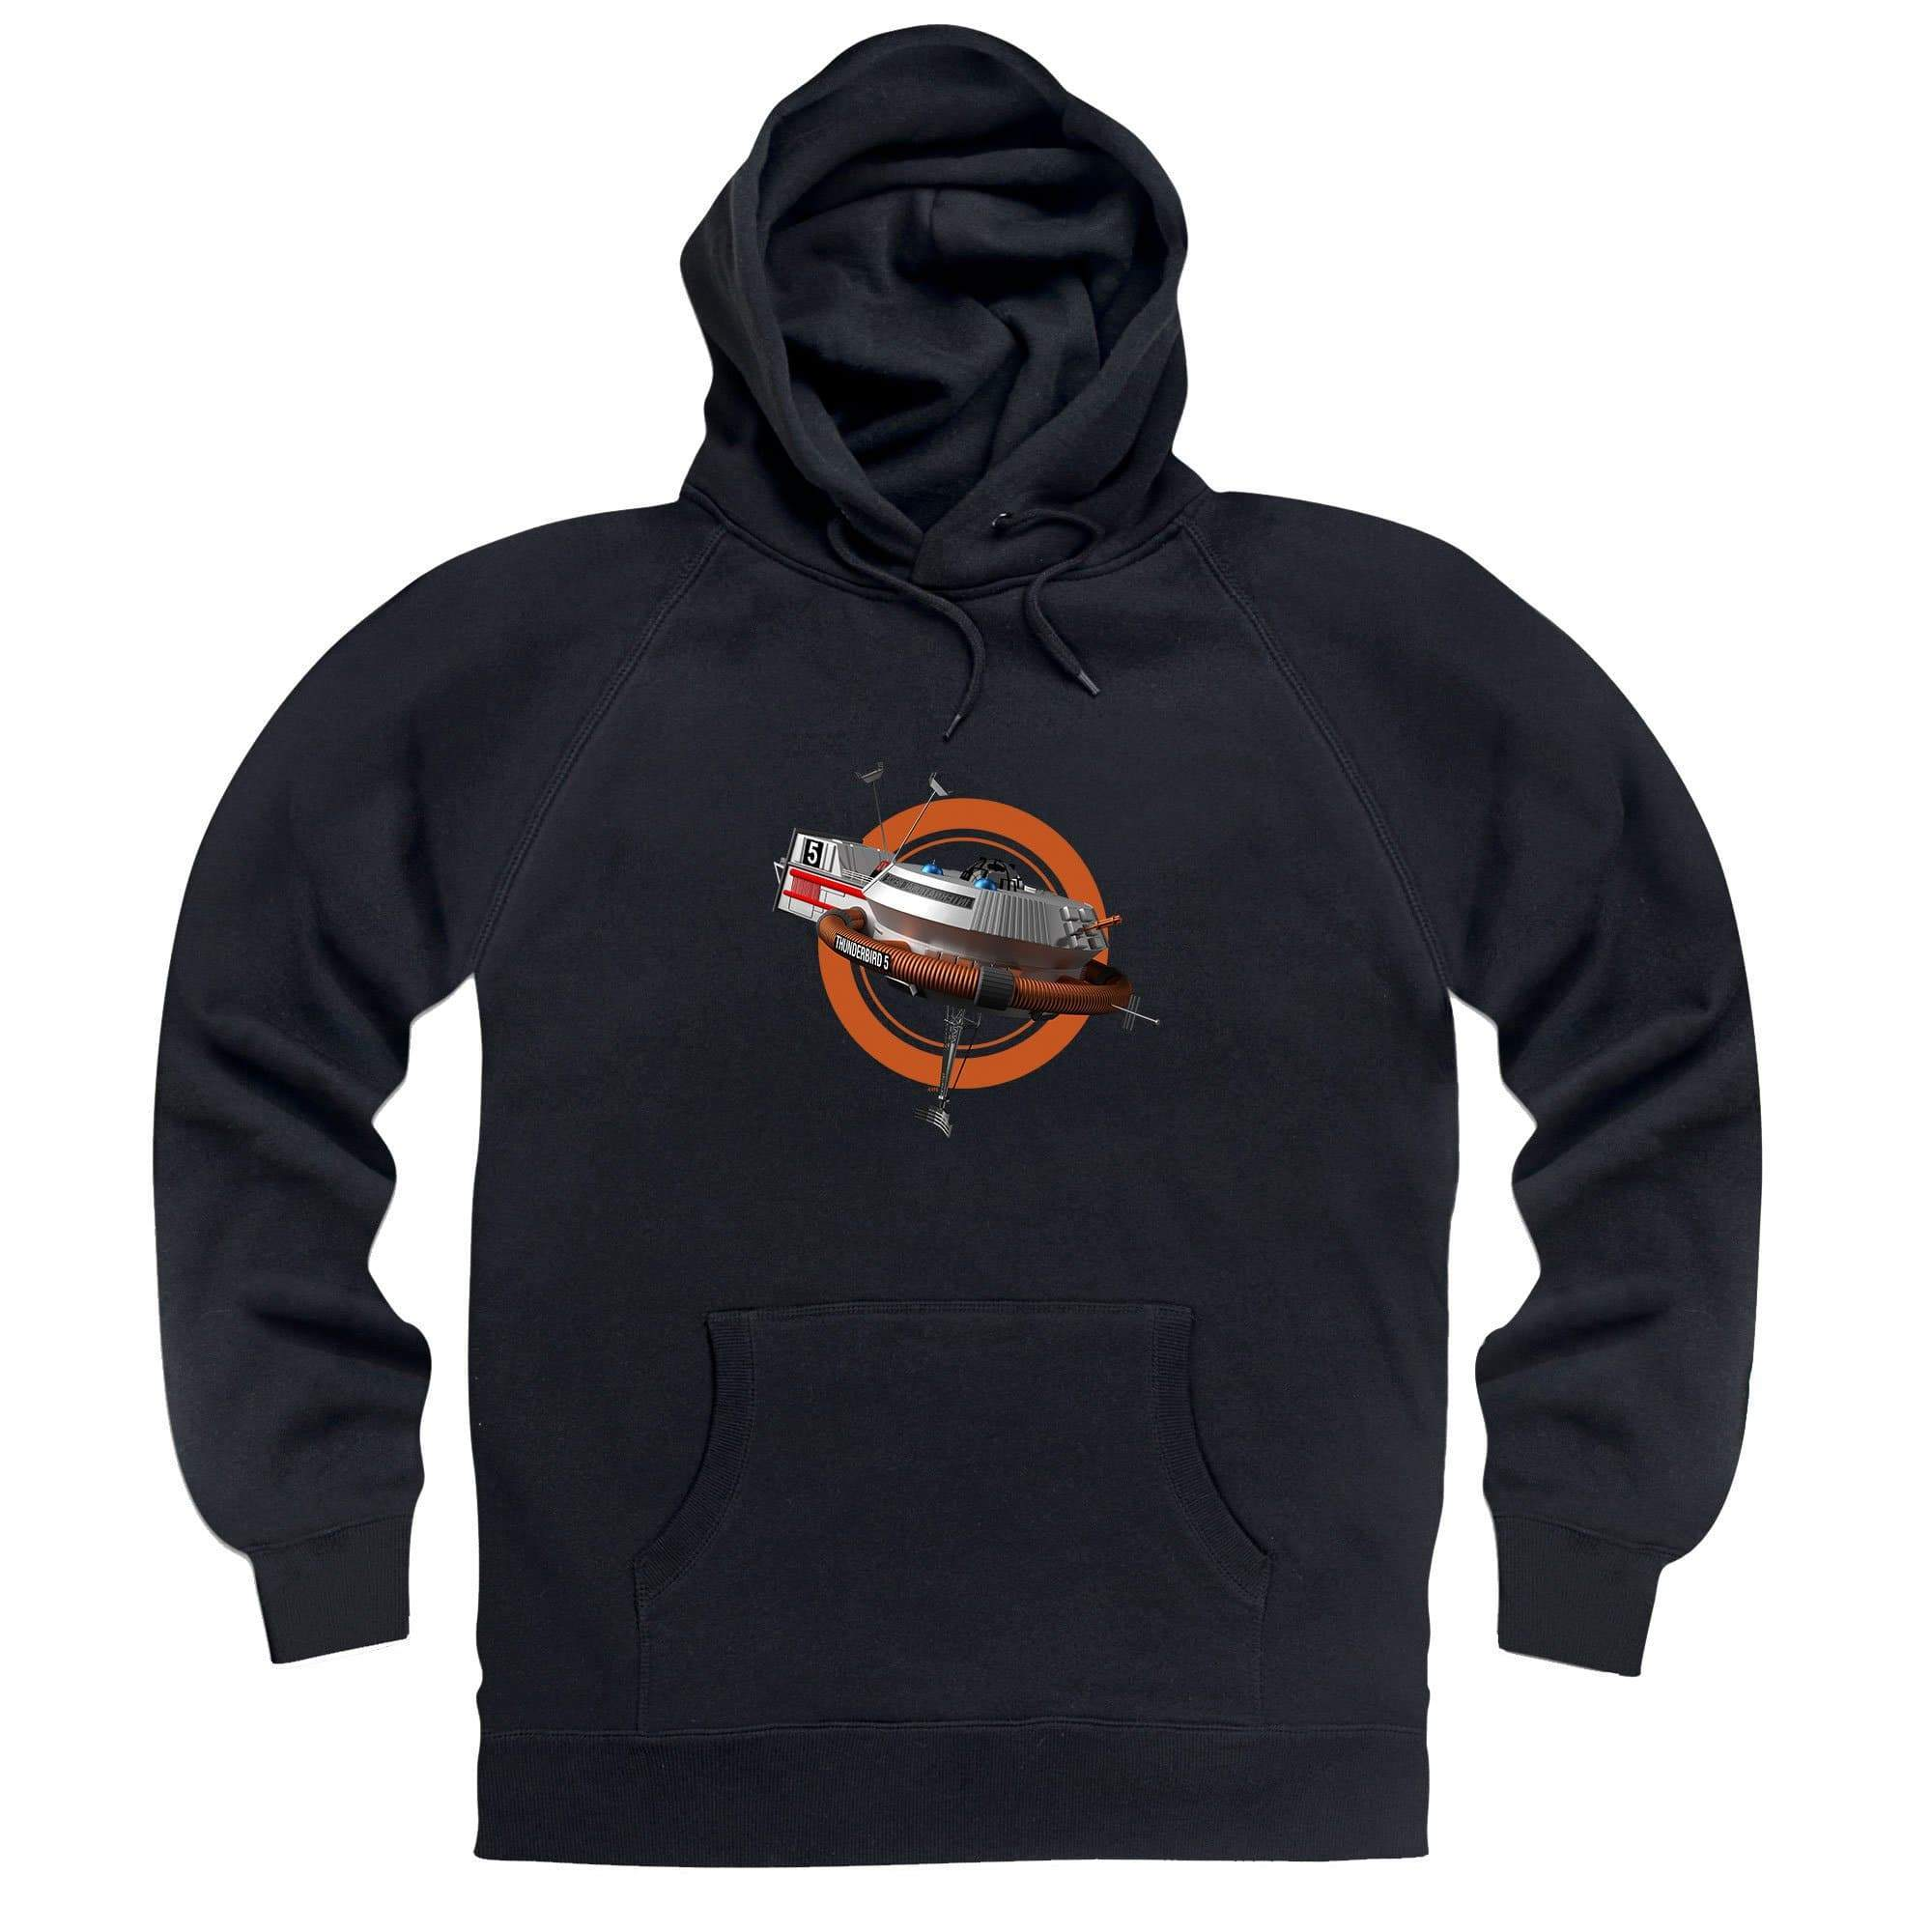 Thunderbird 5 Hoodie [Official & Exclusive] - The Gerry Anderson Store